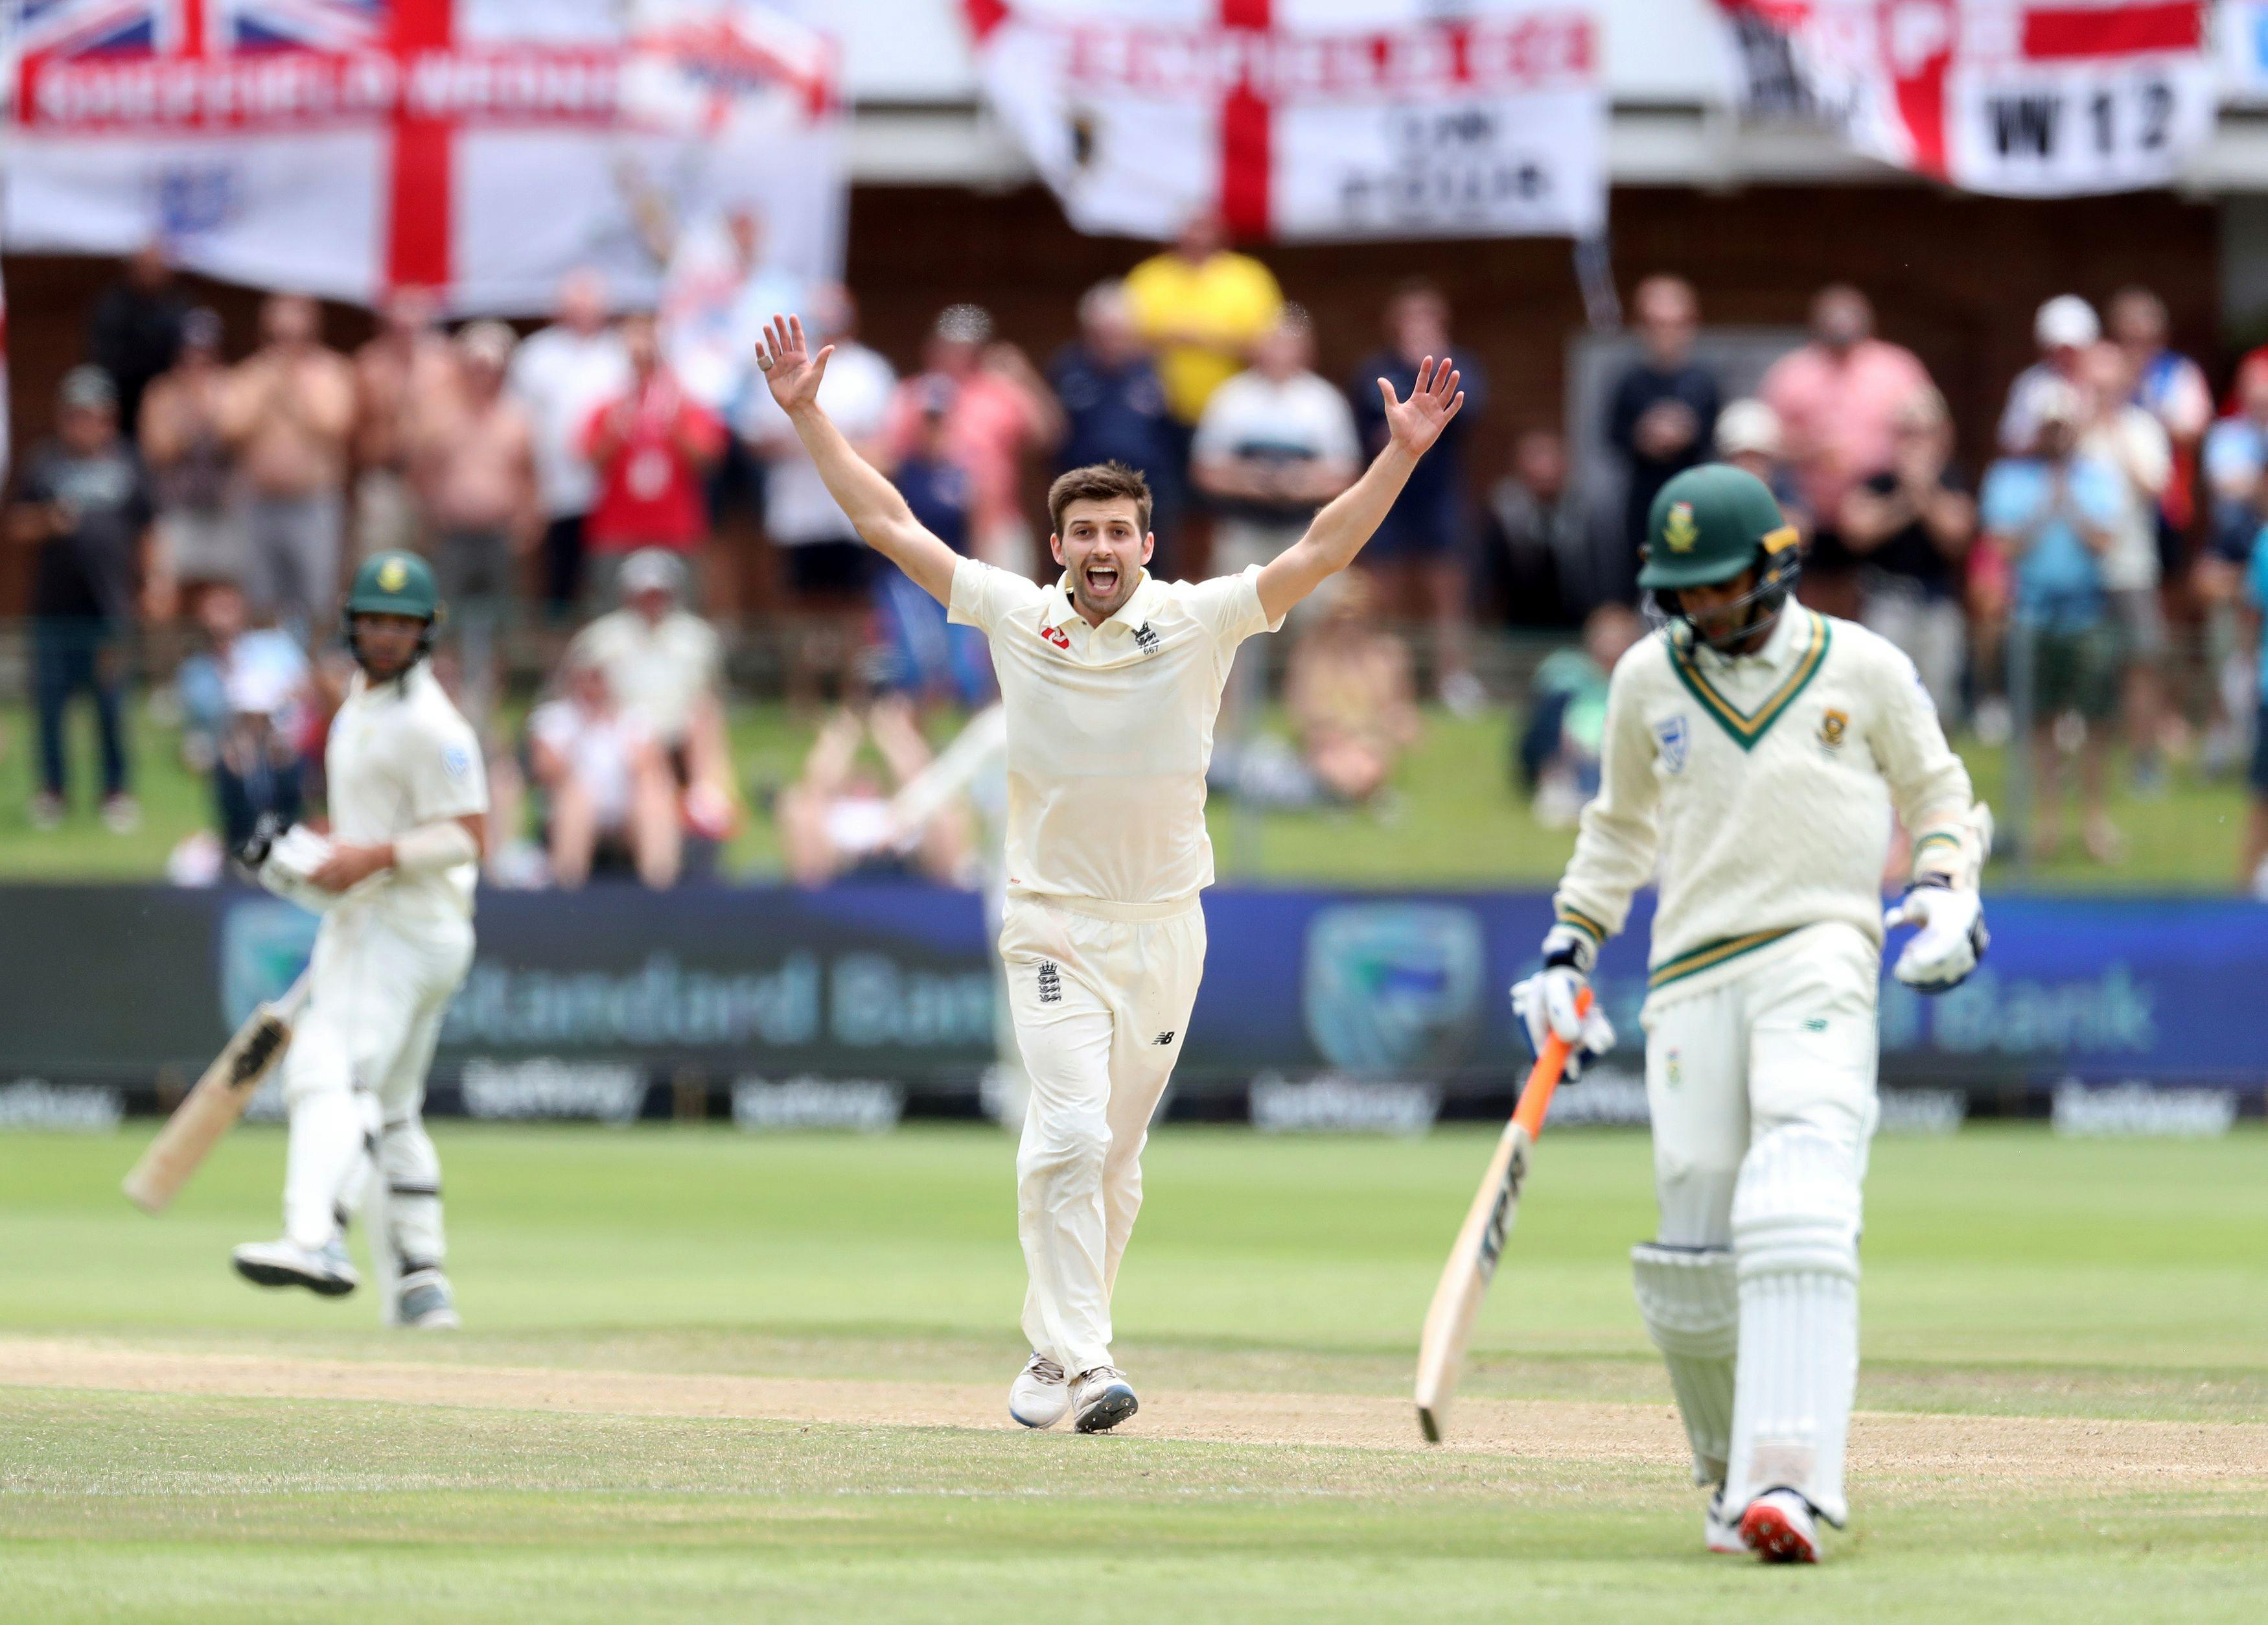 England thrash South Africa by an innings and 53 runs to take 2-1 lead